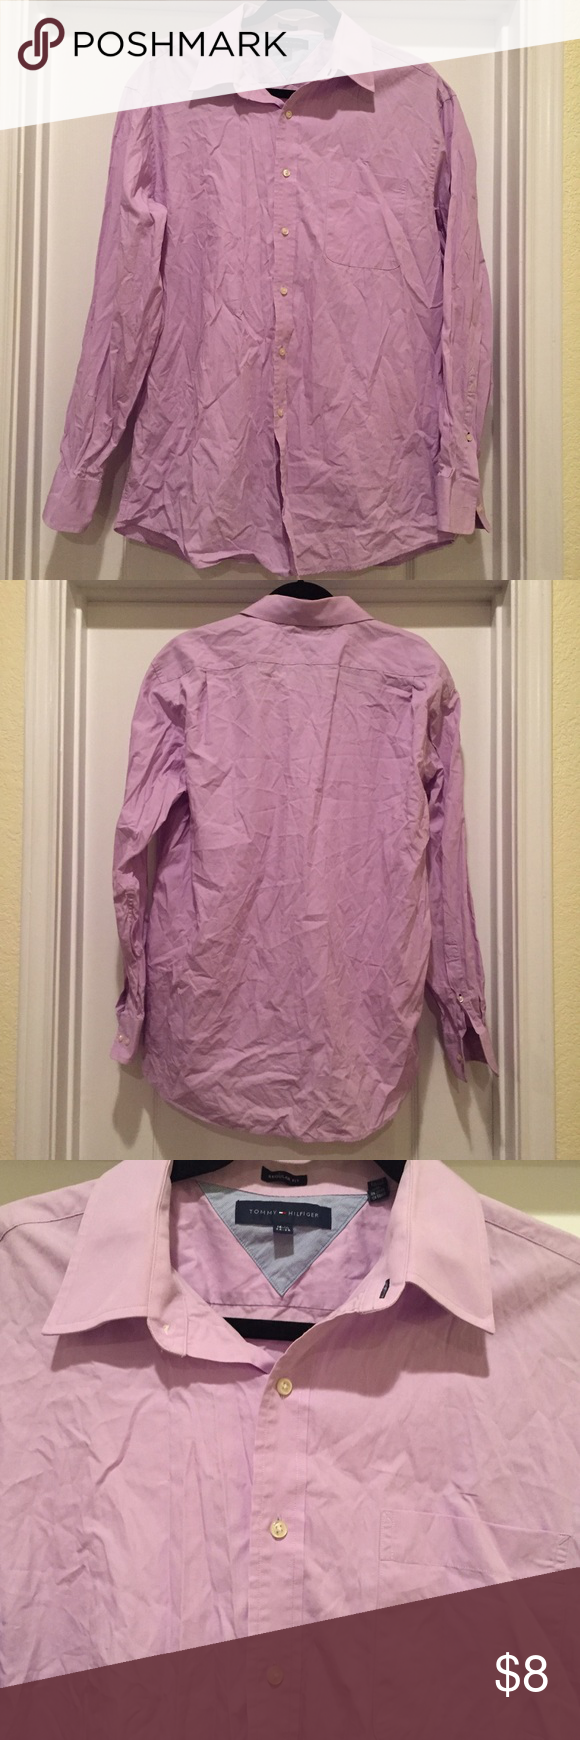 Tommy Hilfiger lavender shirt. 16.5 neck Tommy Hilfiger lavender shirt. 16.5 neck Tommy Hilfiger Shirts Casual Button Down Shirts